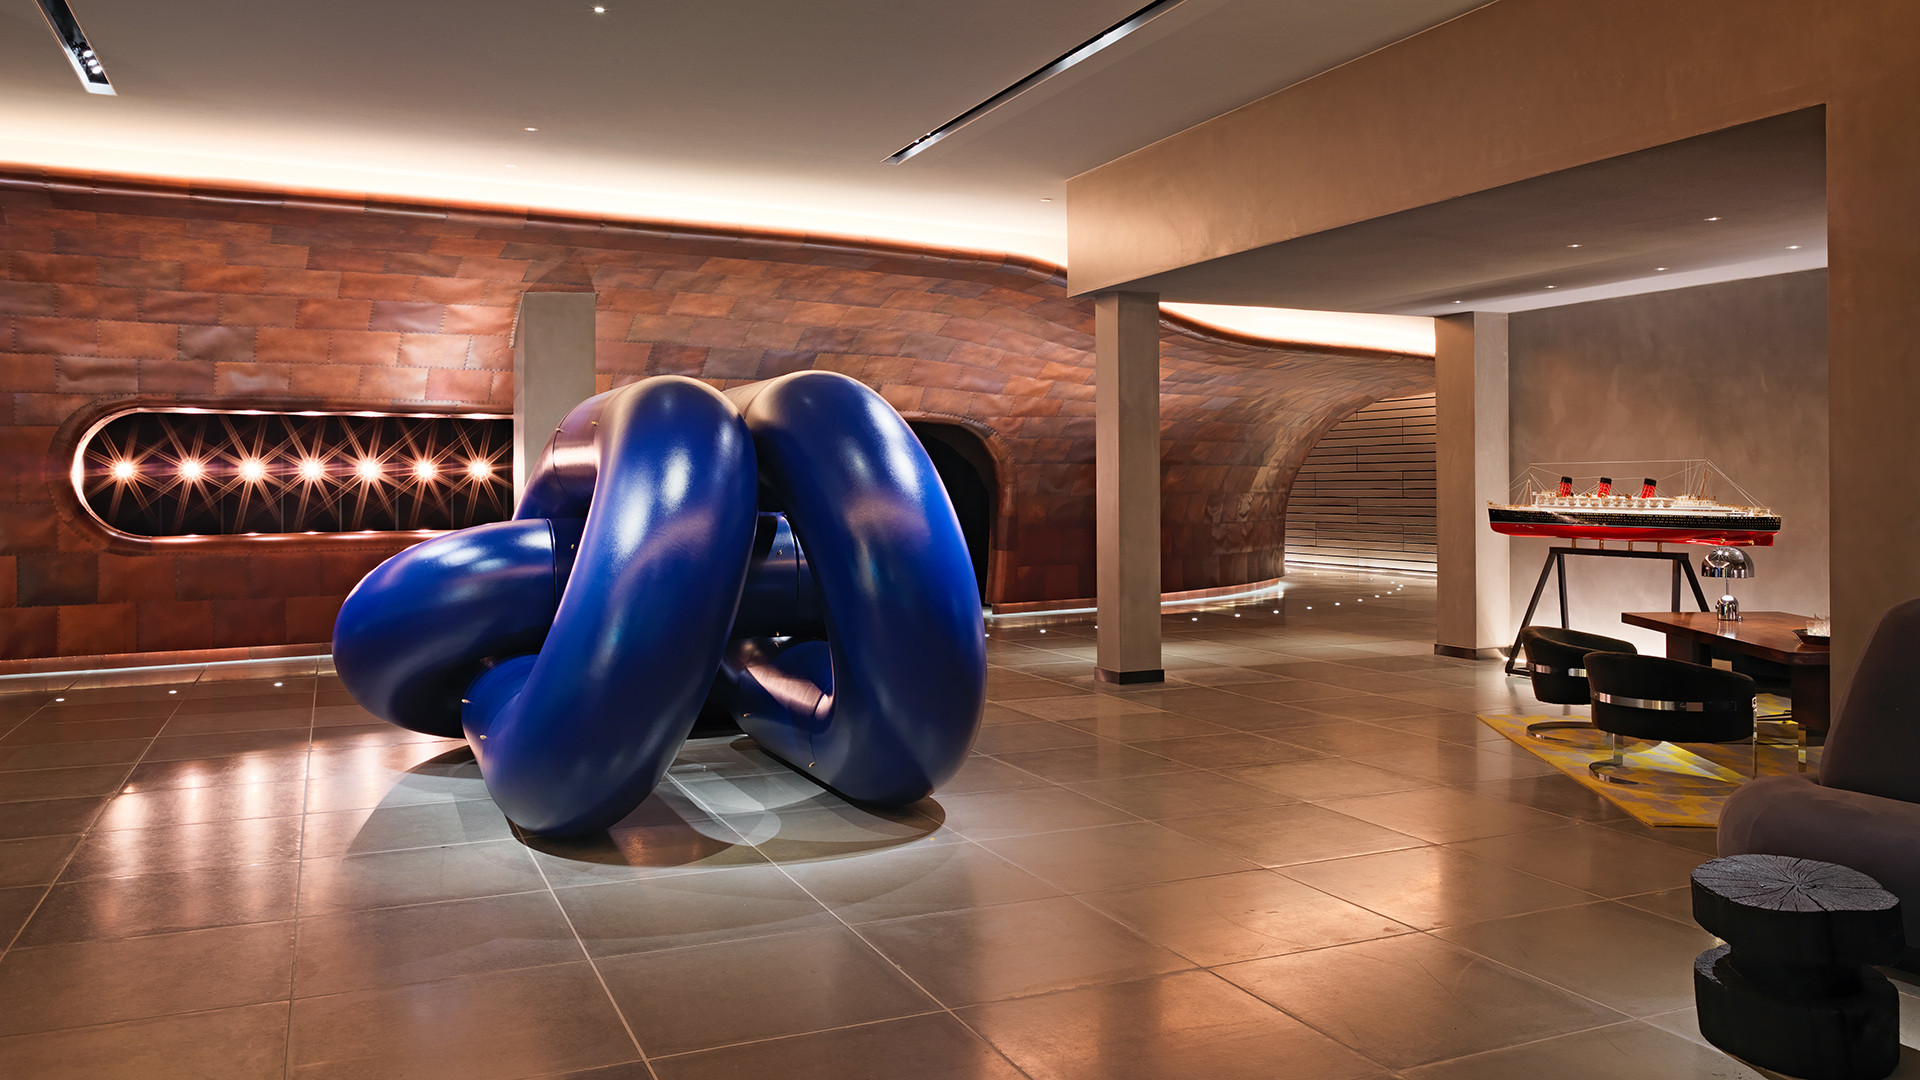 Lobby at Sea Containers London